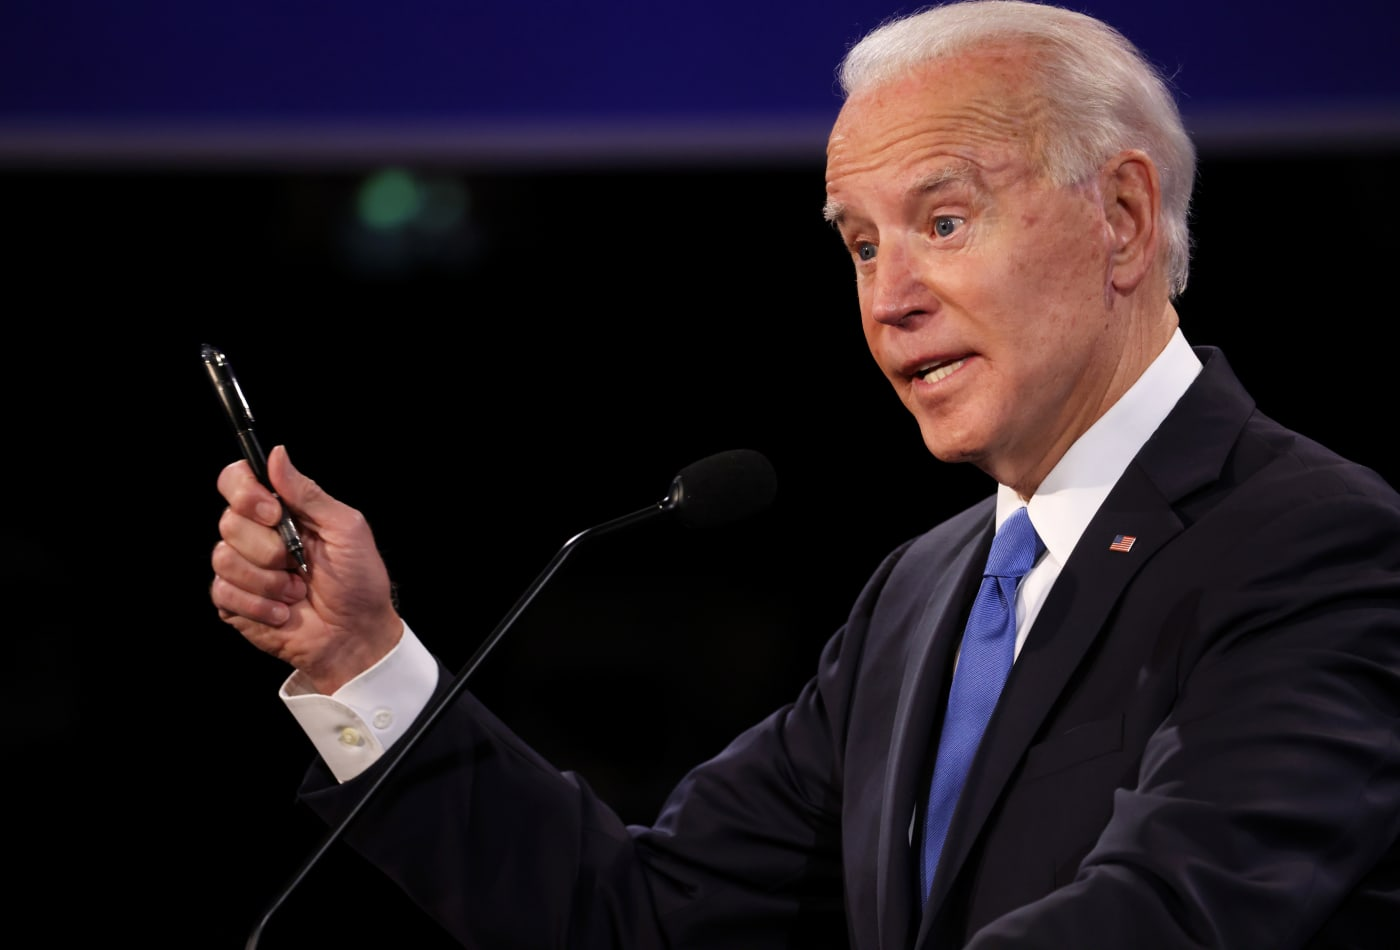 Joe Biden calls climate change the 'number one issue facing humanity'